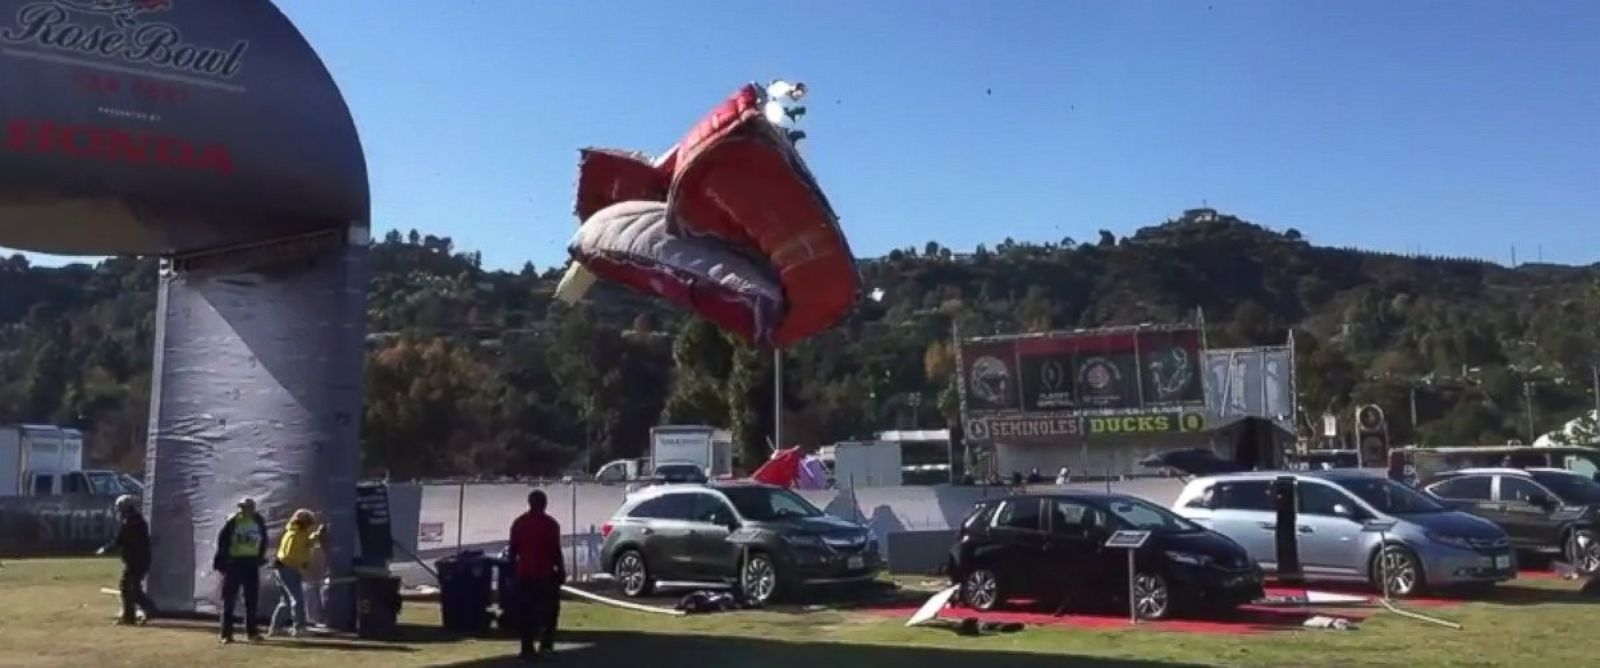 PHOTO: Four people were injured today by wind-blown booths at the Rose Bowl Stadium in Pasadena, California.